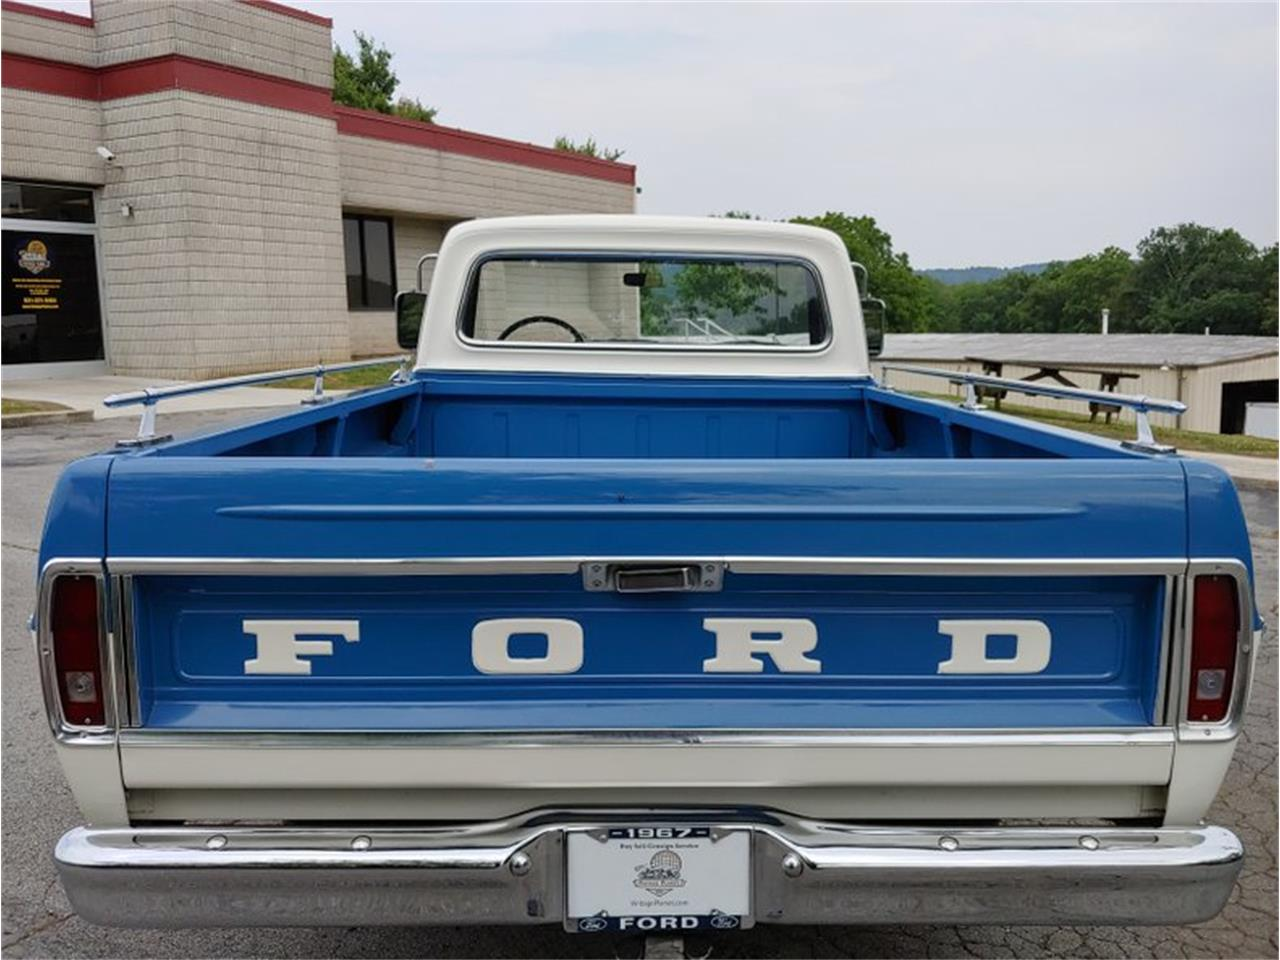 Large Picture of Classic '67 Ford F100 located in Cookeville Tennessee - $17,200.00 - QANN